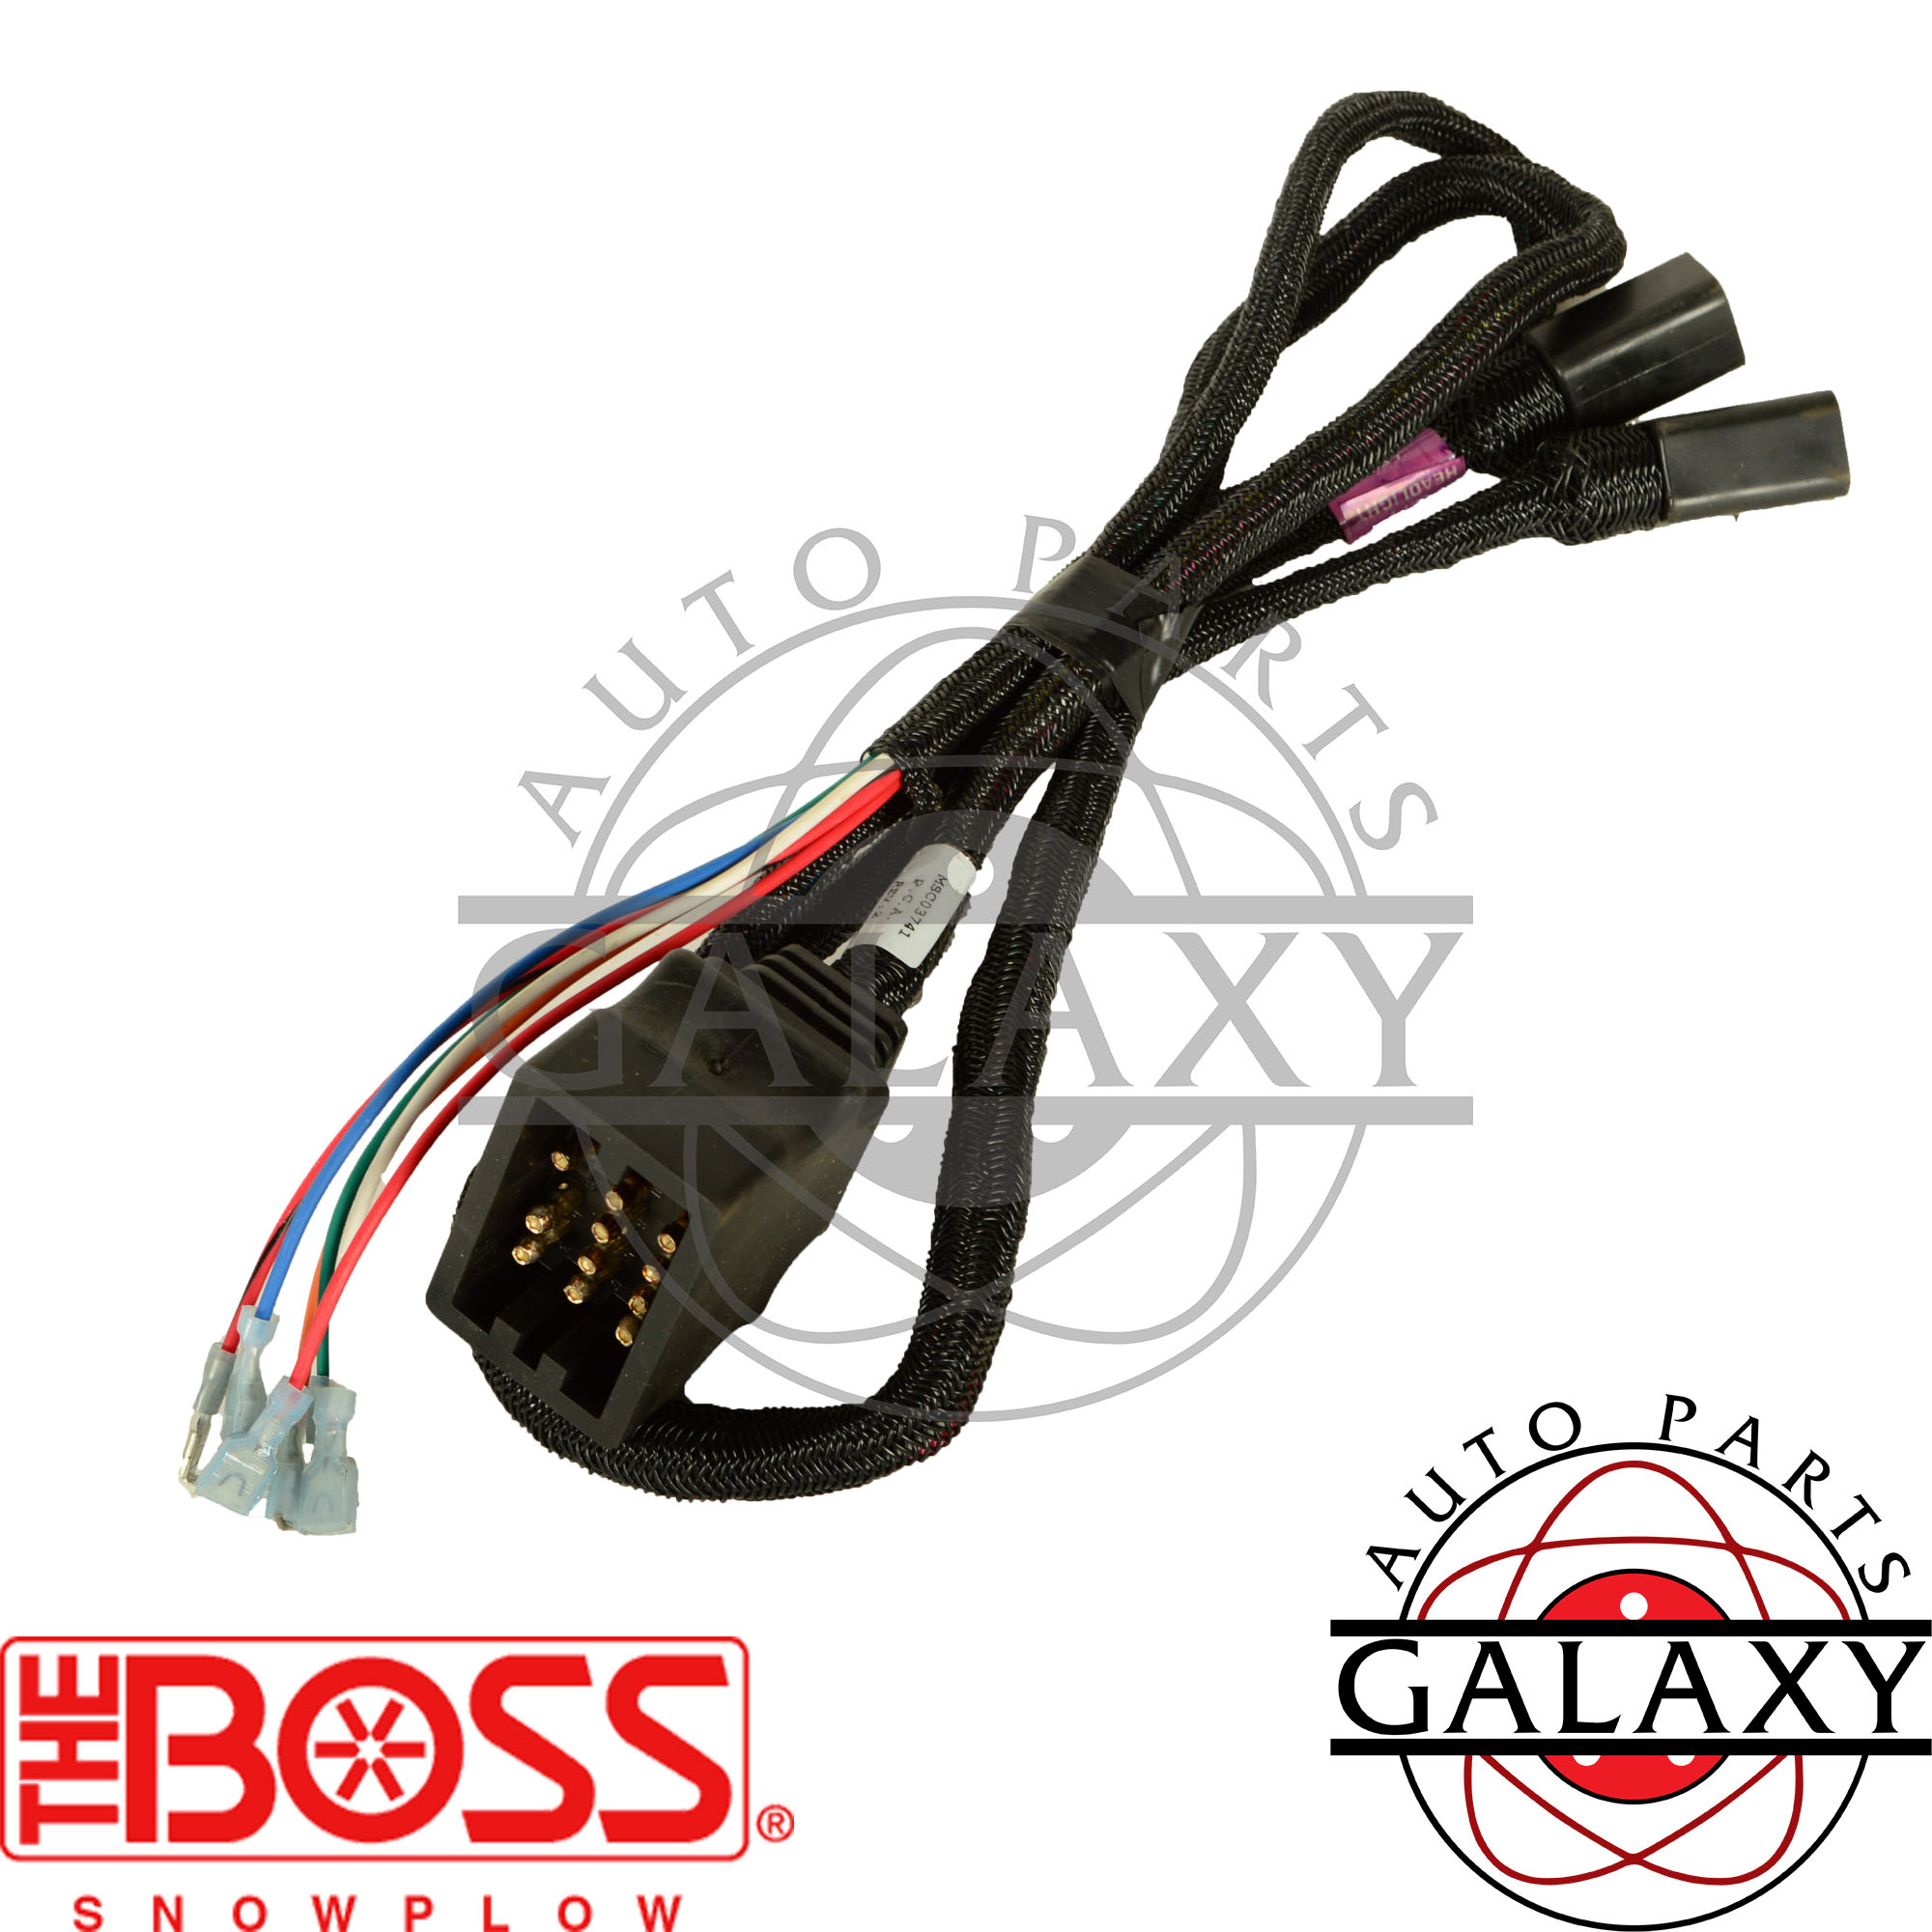 Boss Snow Plow Lights Wiring Harness To Diagrams Diagram Msc03741 Ebay Installation Light